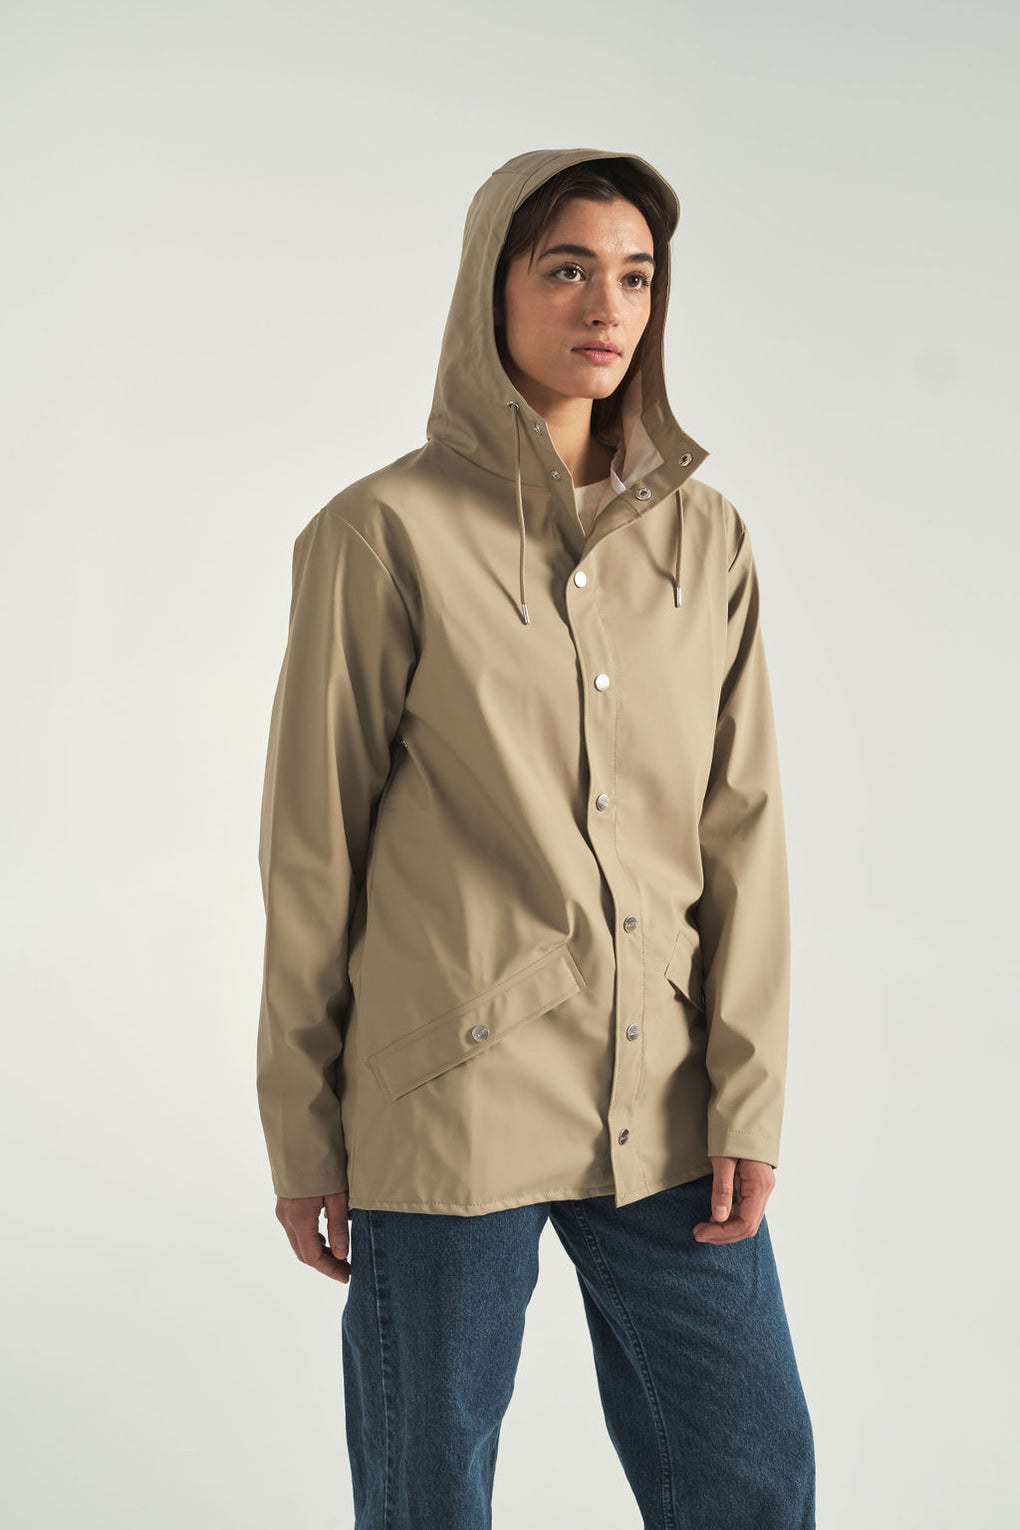 Rain Jacket in Beige